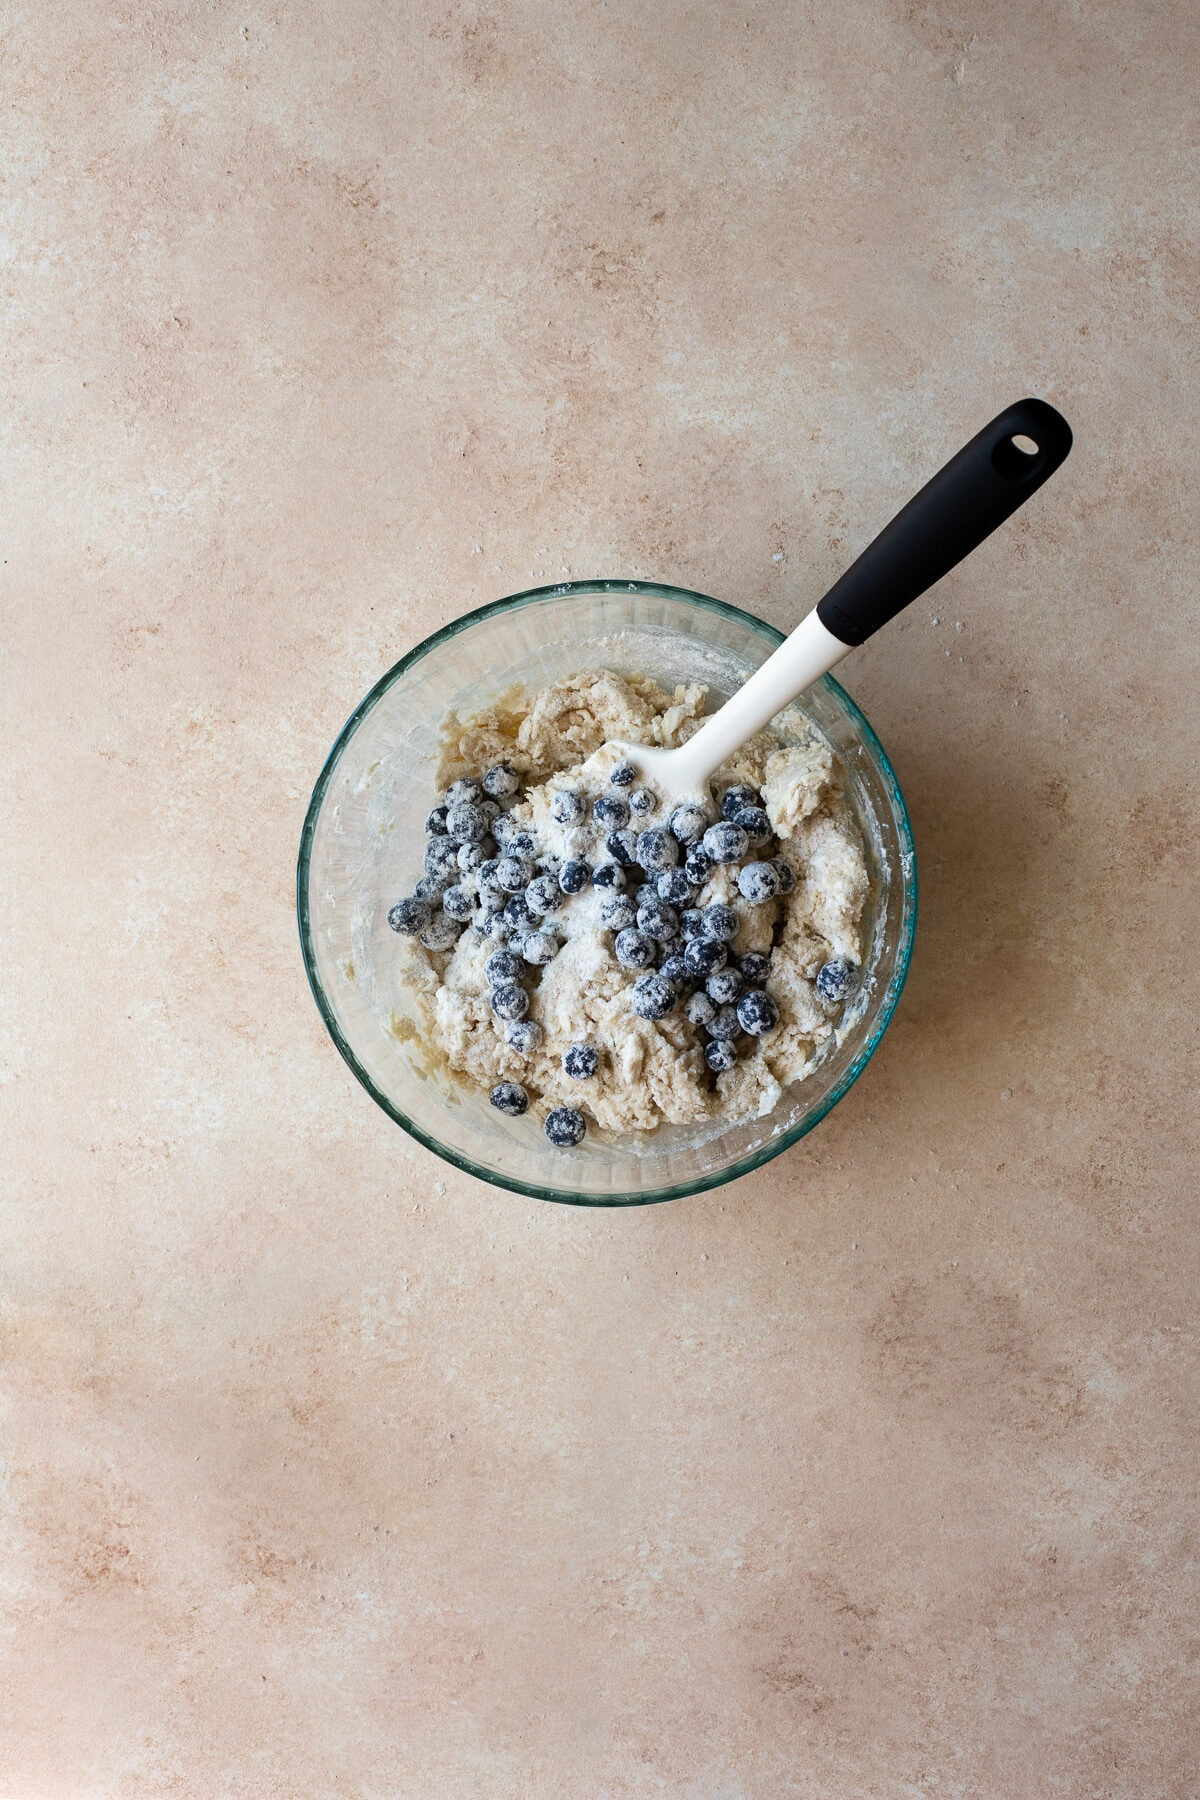 Blueberries being folded into scone dough in a bowl.